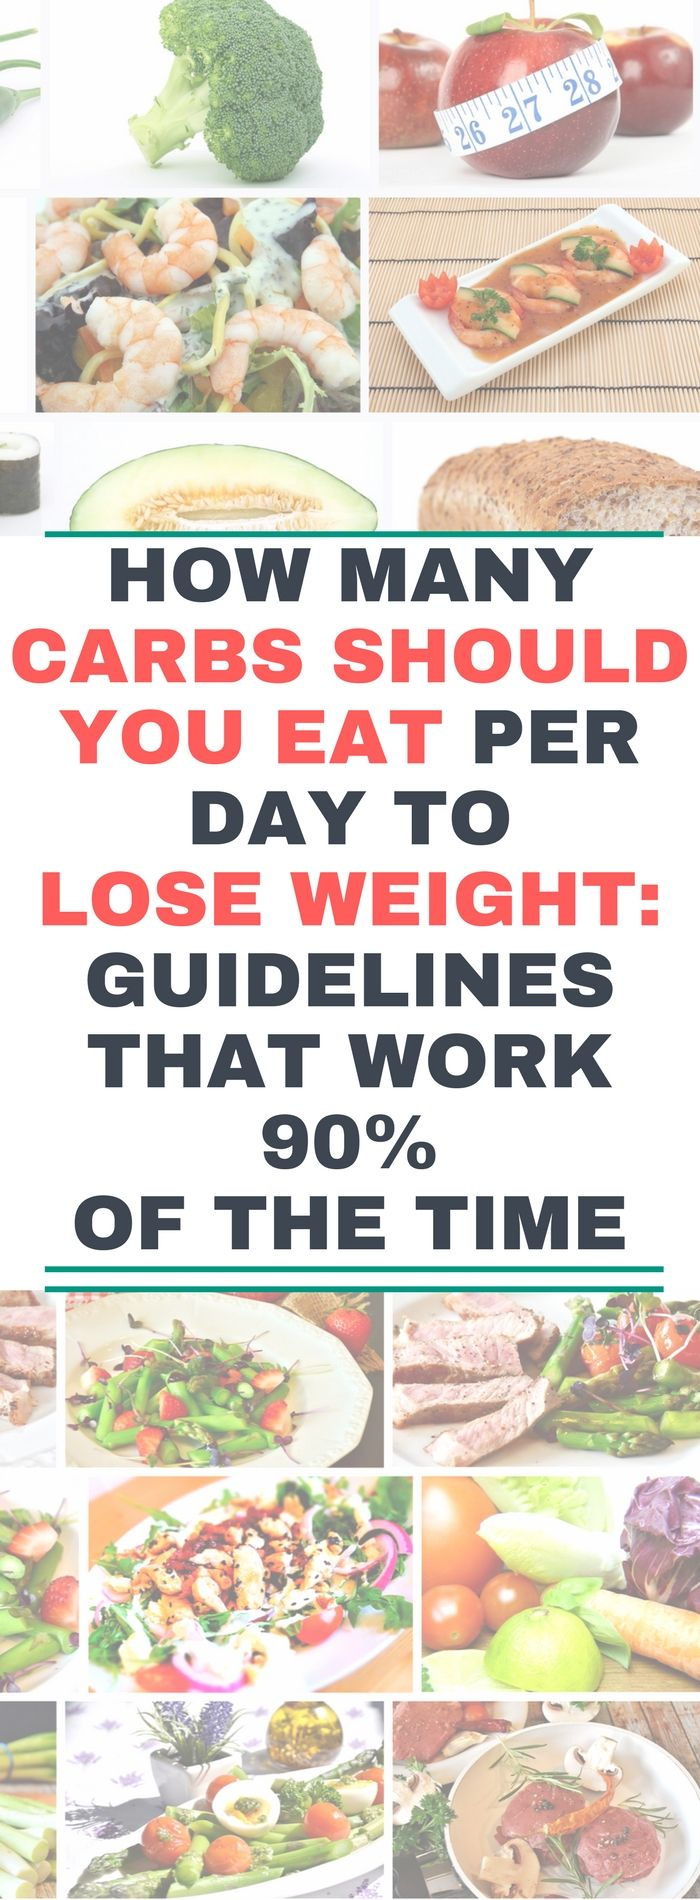 HOW MANY CARBS SHOULD YOU EAT PER DAY TO LOSE WEIGHT!!! GUIDELINES THAT WORK 90% OF THE TIME!! Read!!!   #fitnessgirl #fitnessmom #transformations #fitnesslife #abs #train #healthy #healthylifestyle #sisepuede #tattoo #tattoossometimes #fridaynight #gymsession #weightloss #legsgains #ladybeast #triplet #fitnessjourney #fitnesslifestyle #fitnessfreak #girlswholift #nopainnogain #getstrong #mondaymiles #chestday #seenonmyrun #trainhard #strengthtraining #physiquefreak #catsofinstagram